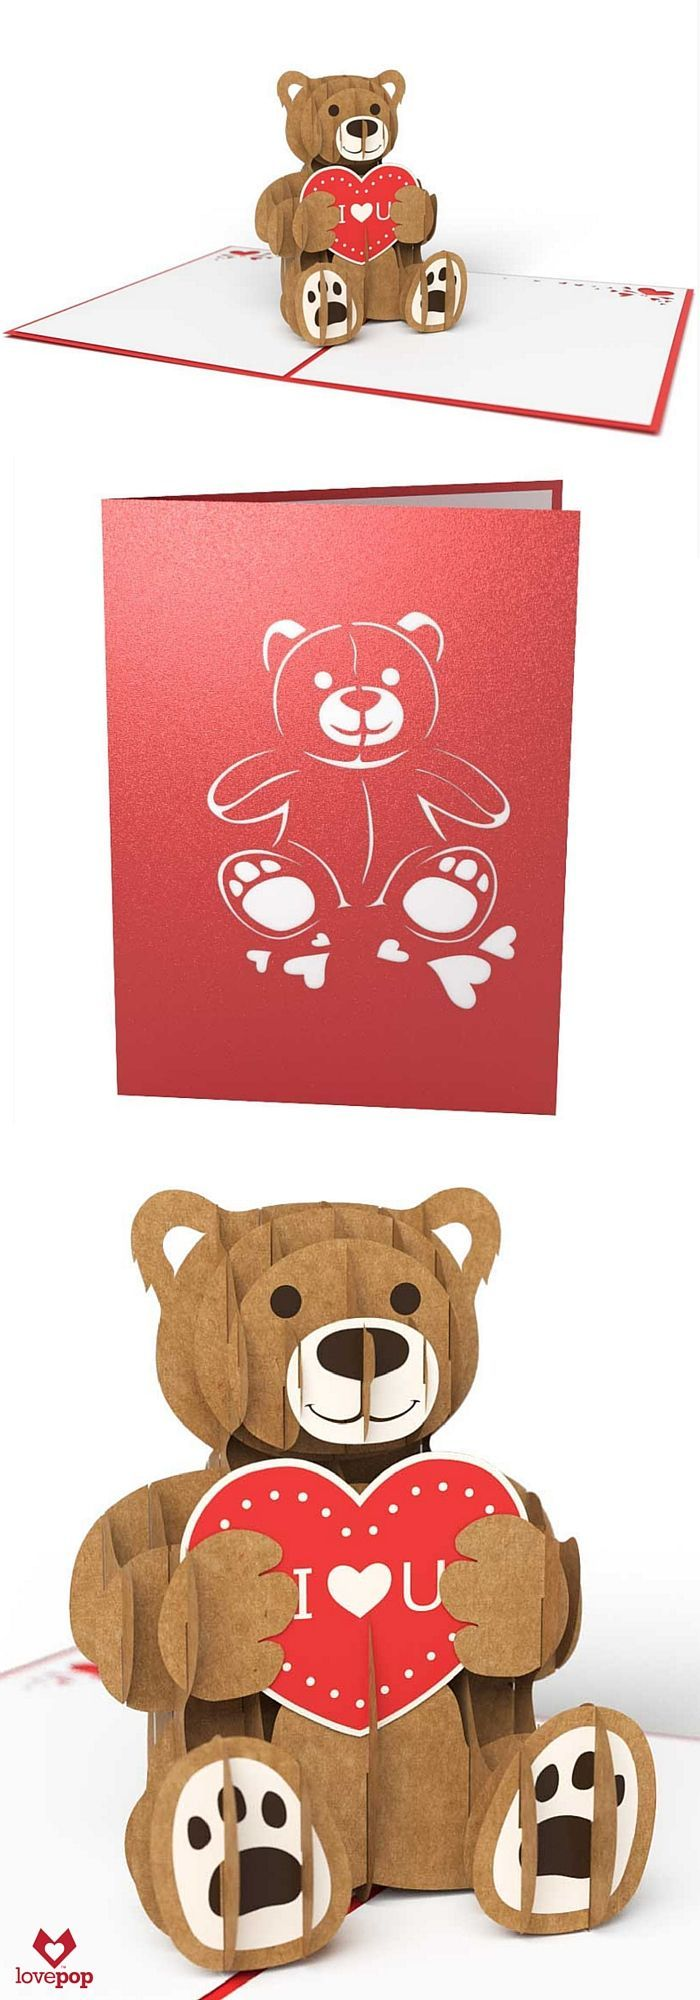 teddy bear pop up card template free - 1160 best images about pap rmunk k on pinterest paper